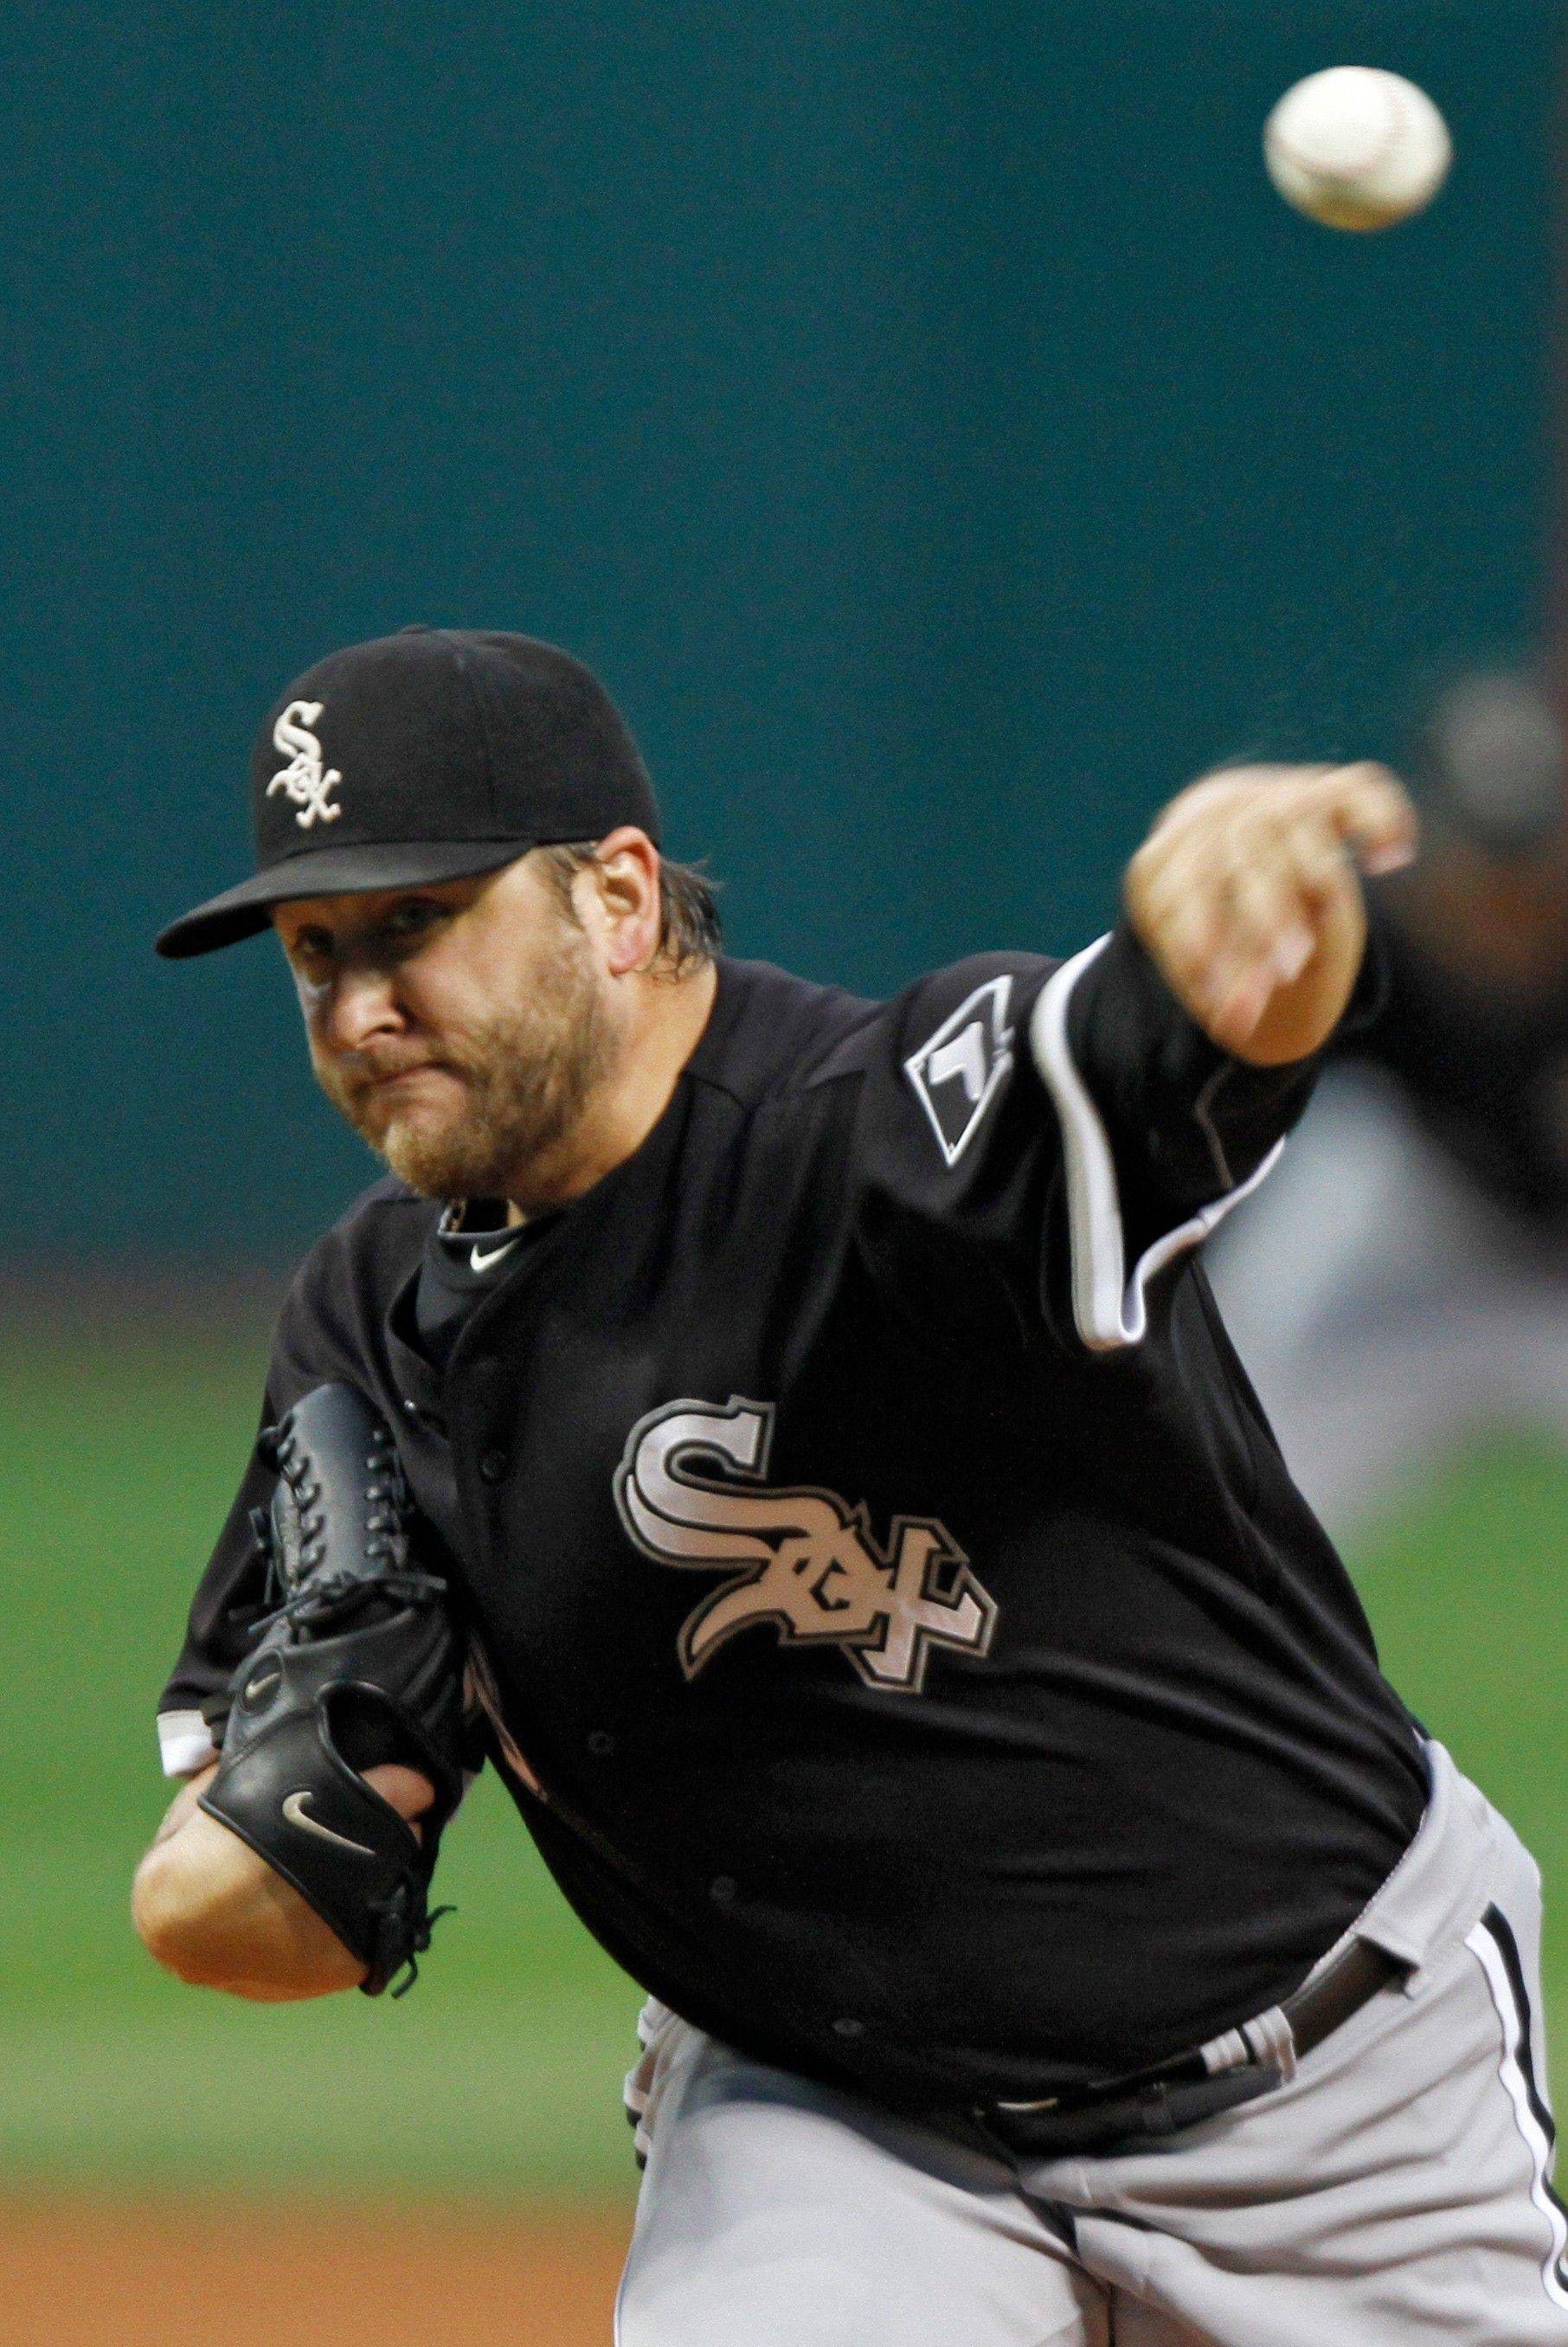 White Sox starter Mark Buehrle improved to 12-9 with his win over the Indians on Wednesday night.